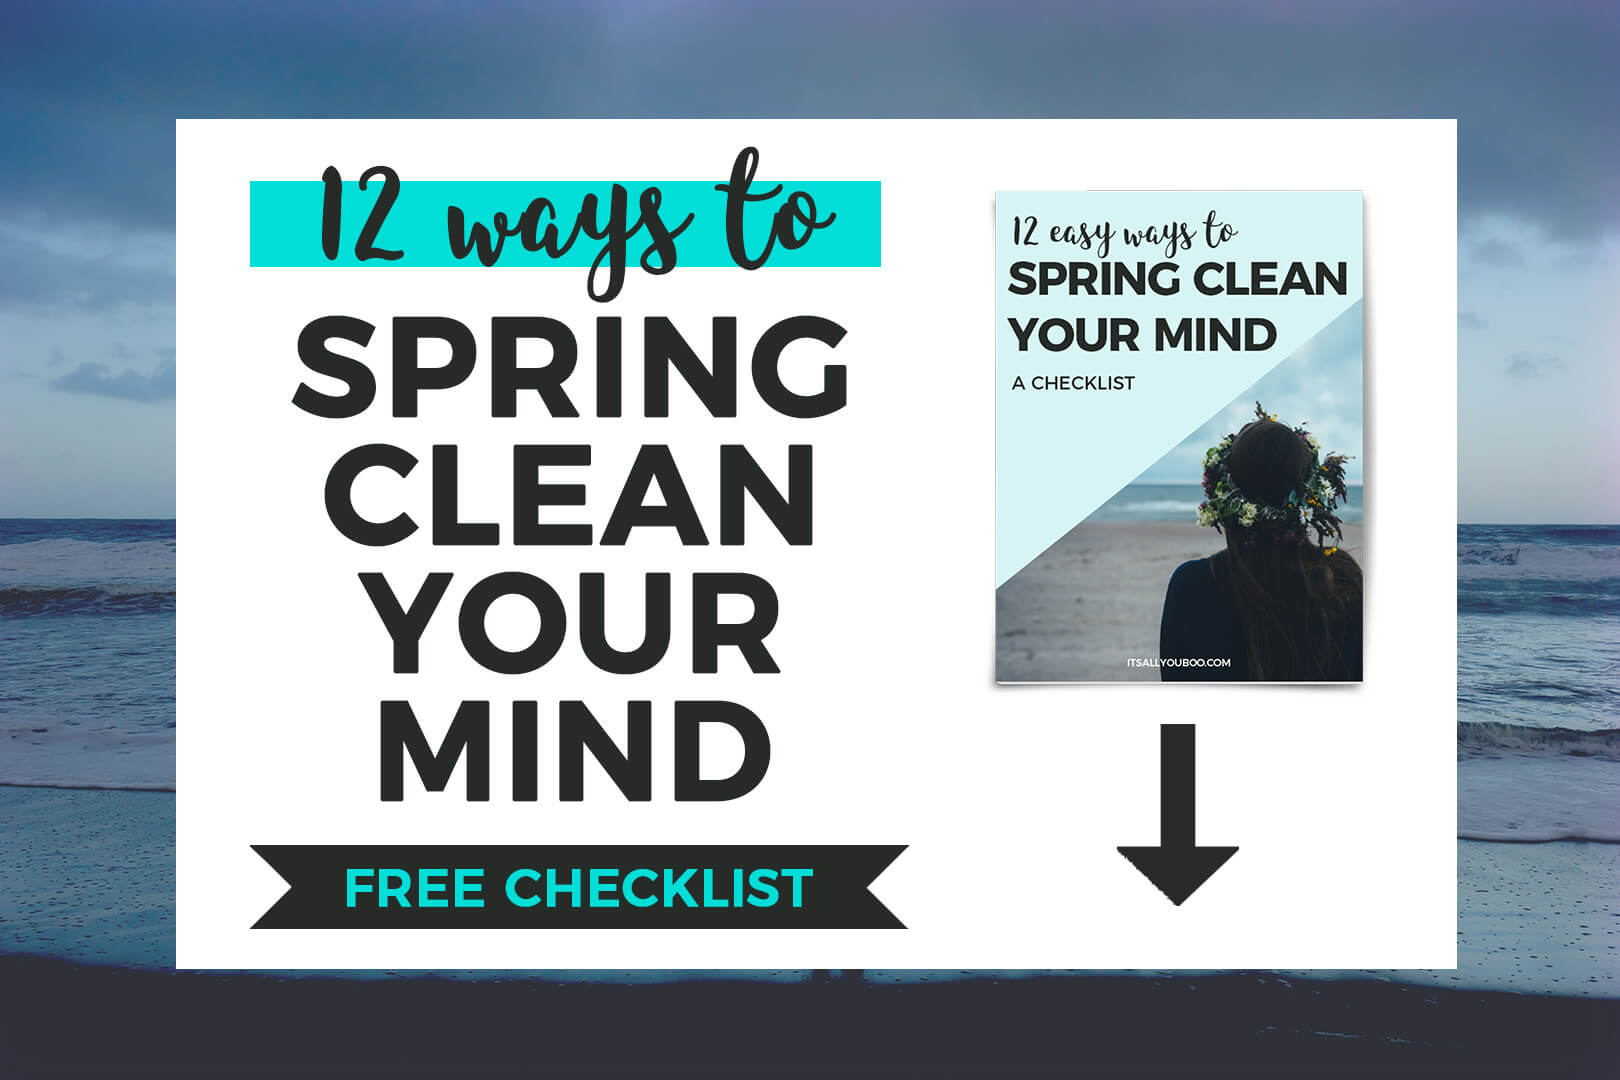 12 Ways to Spring Clean Your Mind FREE CHECKLIST + preview of free download checklist cover